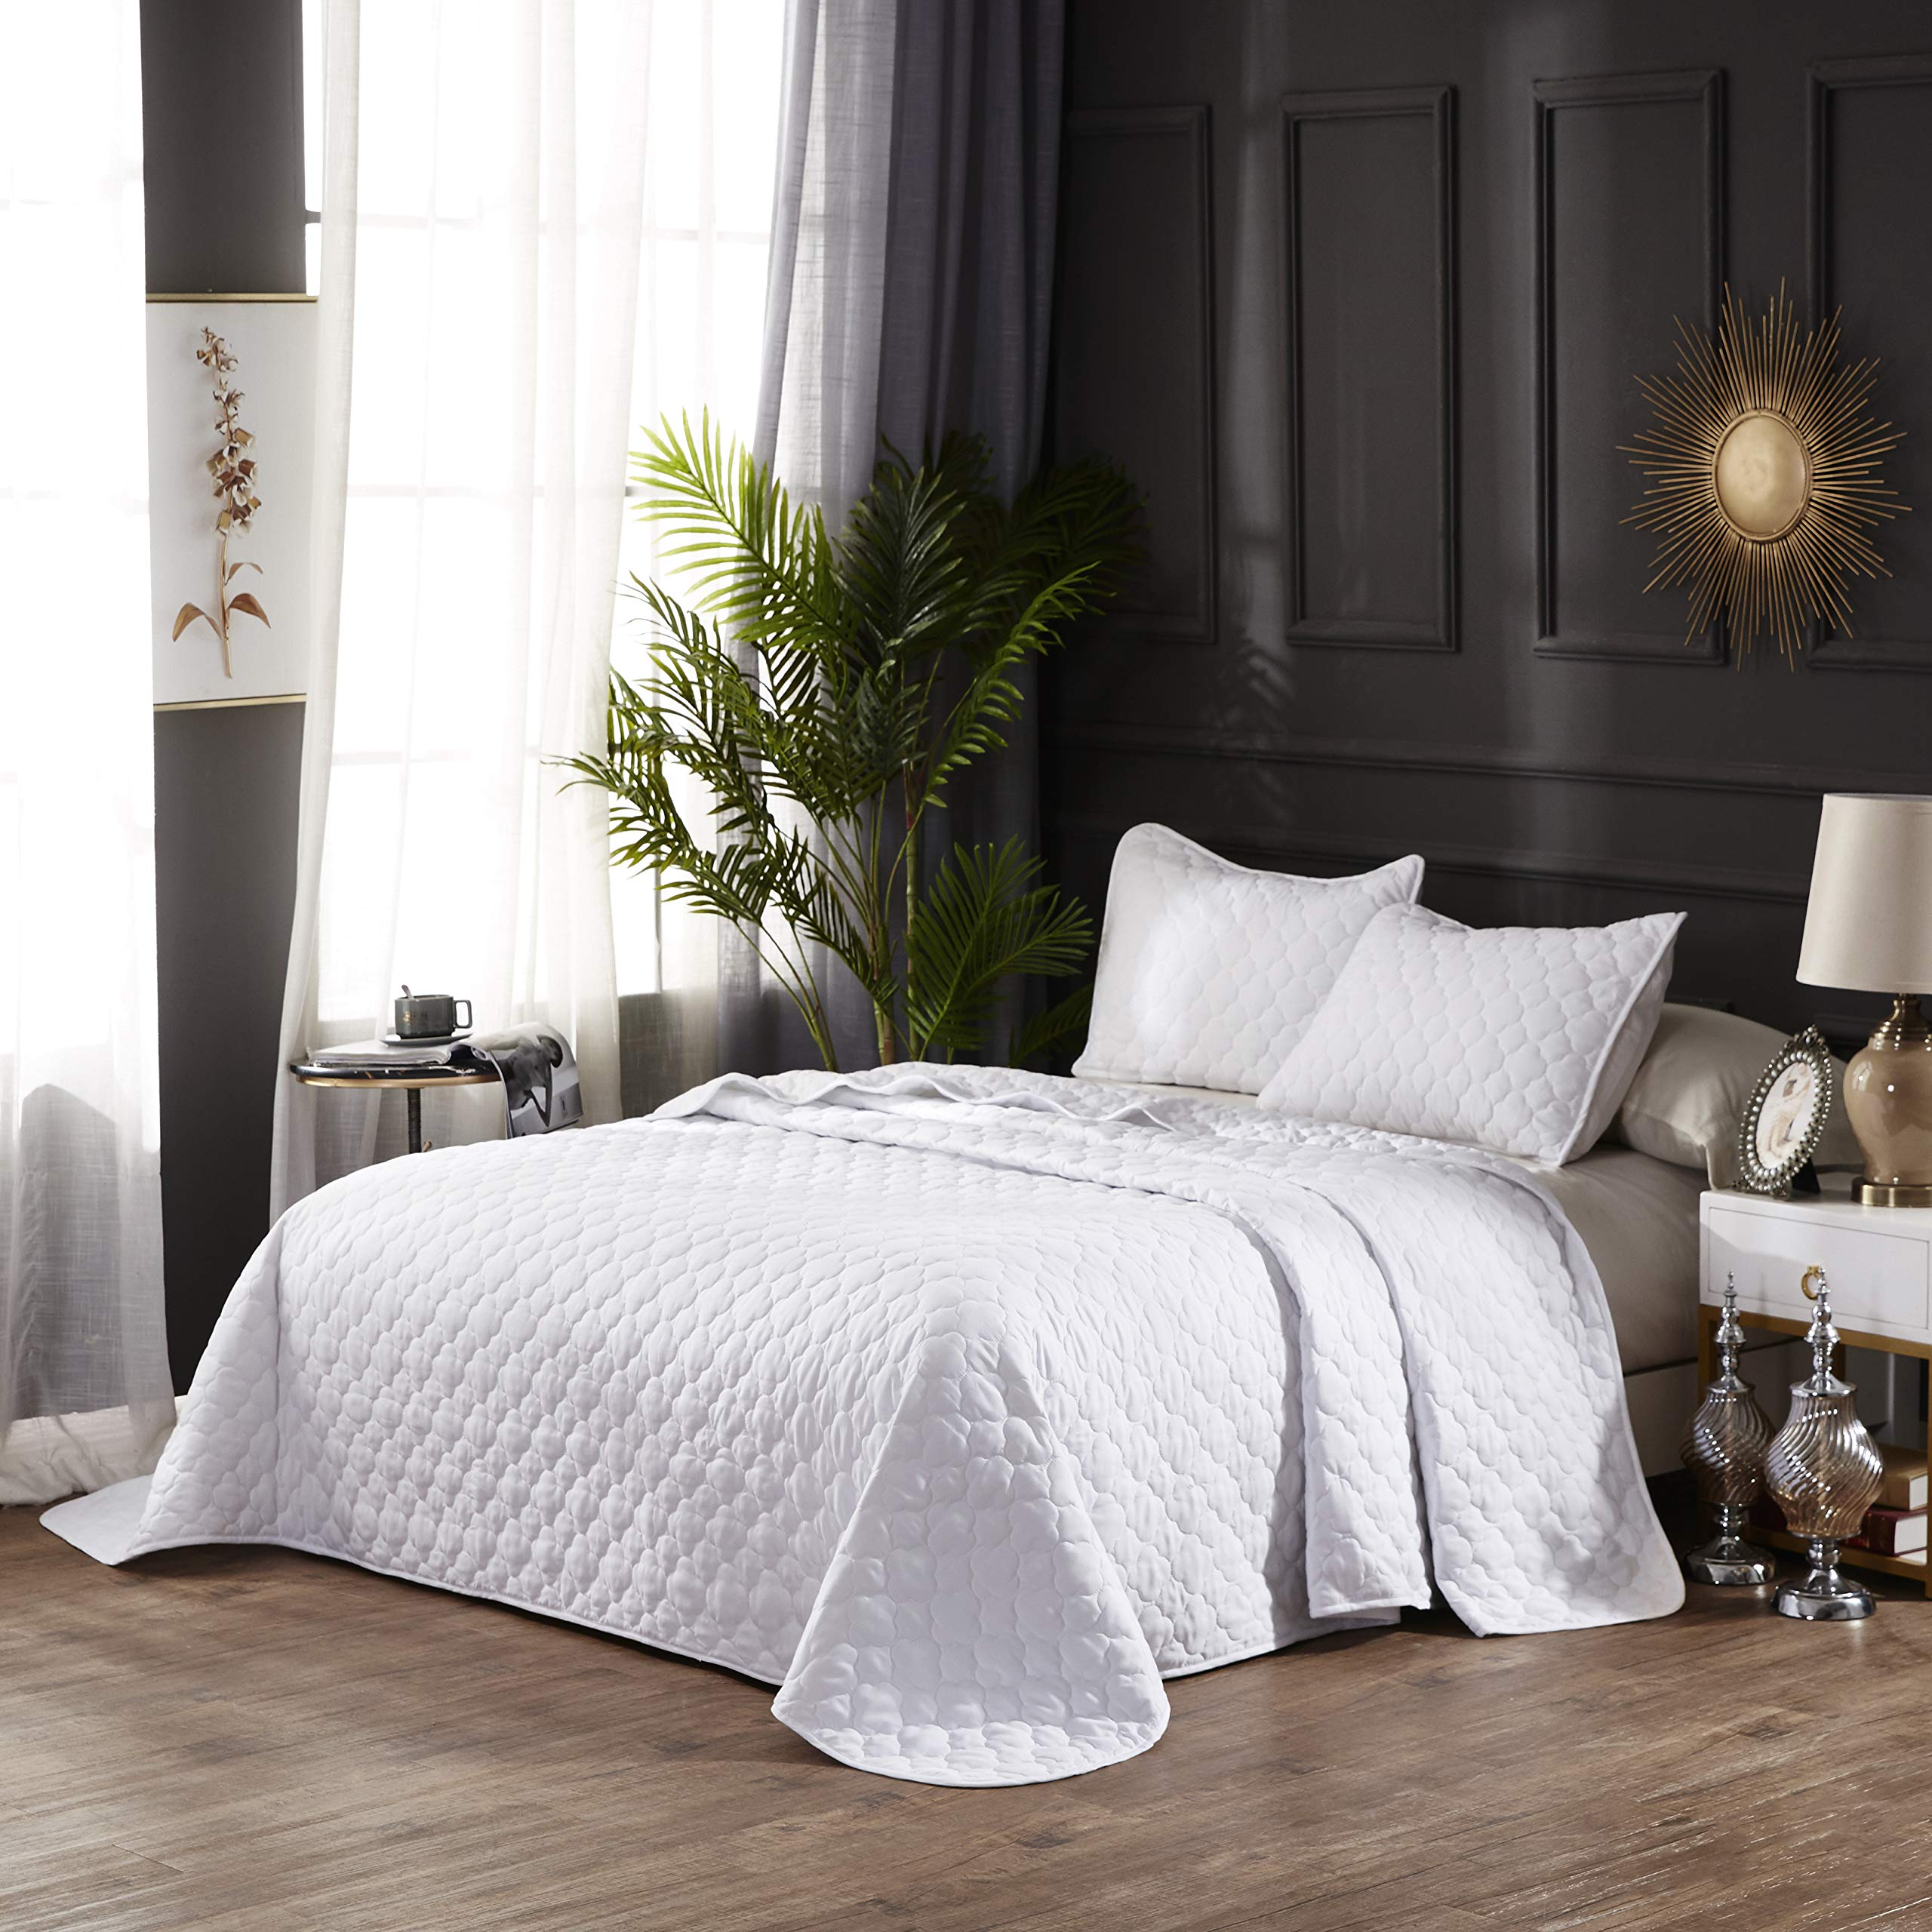 """OVERSIZE QUEEN WHITE SOLID COLOR QUILTED BEDSPREAD COVERLET (106""""X100"""") + 2 STANDARD SHAMS (20""""X26"""") HYPOALLERGENIC OVERFILLED BLANKET, 20'' FALL EACH SIDE -HOME, HOTEL/MOTEL, AIRBNB, RENTALS- 6.28 LBS"""